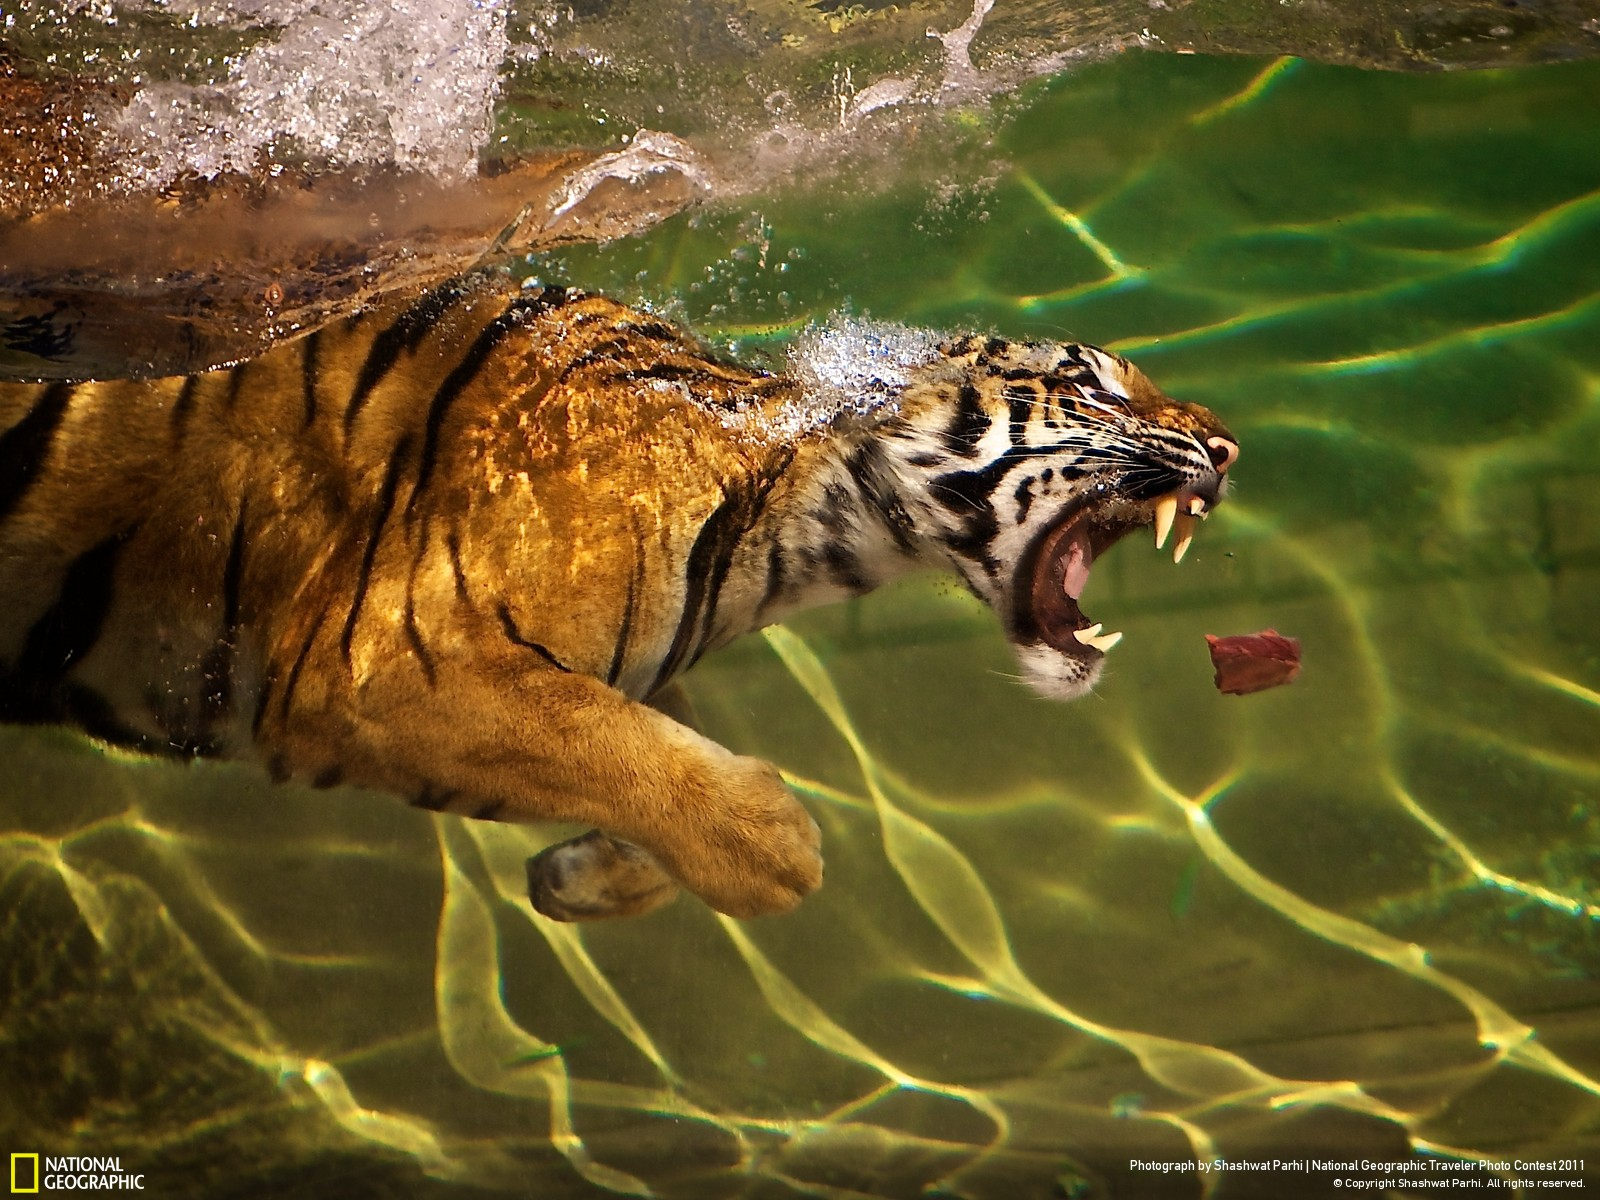 National Geographic Best Nature Photos Under